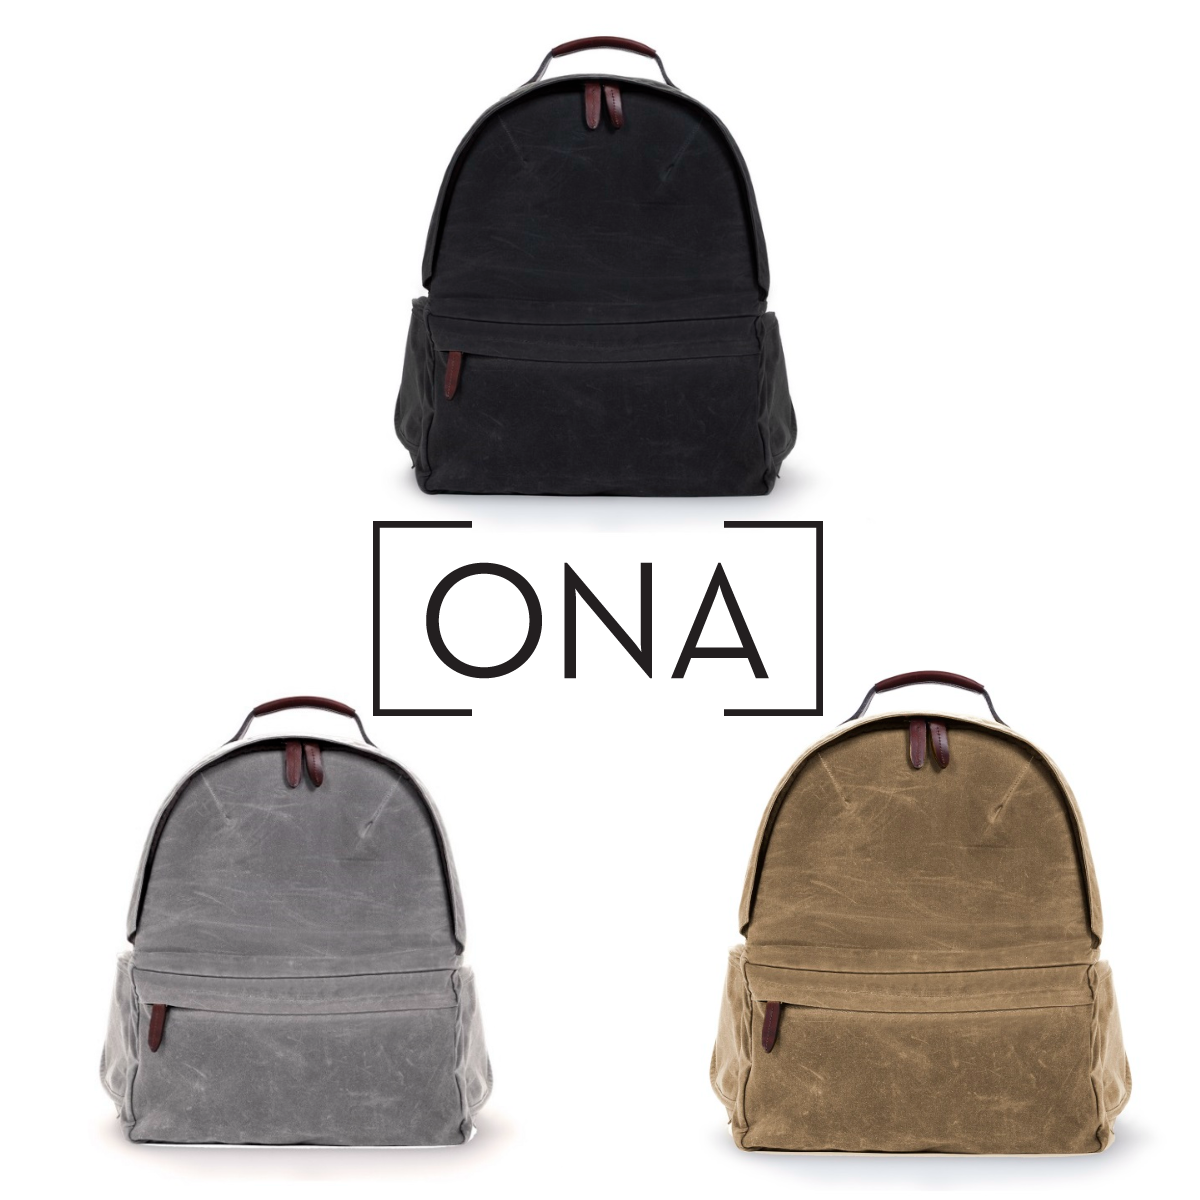 ONA Bolton Street Backpack